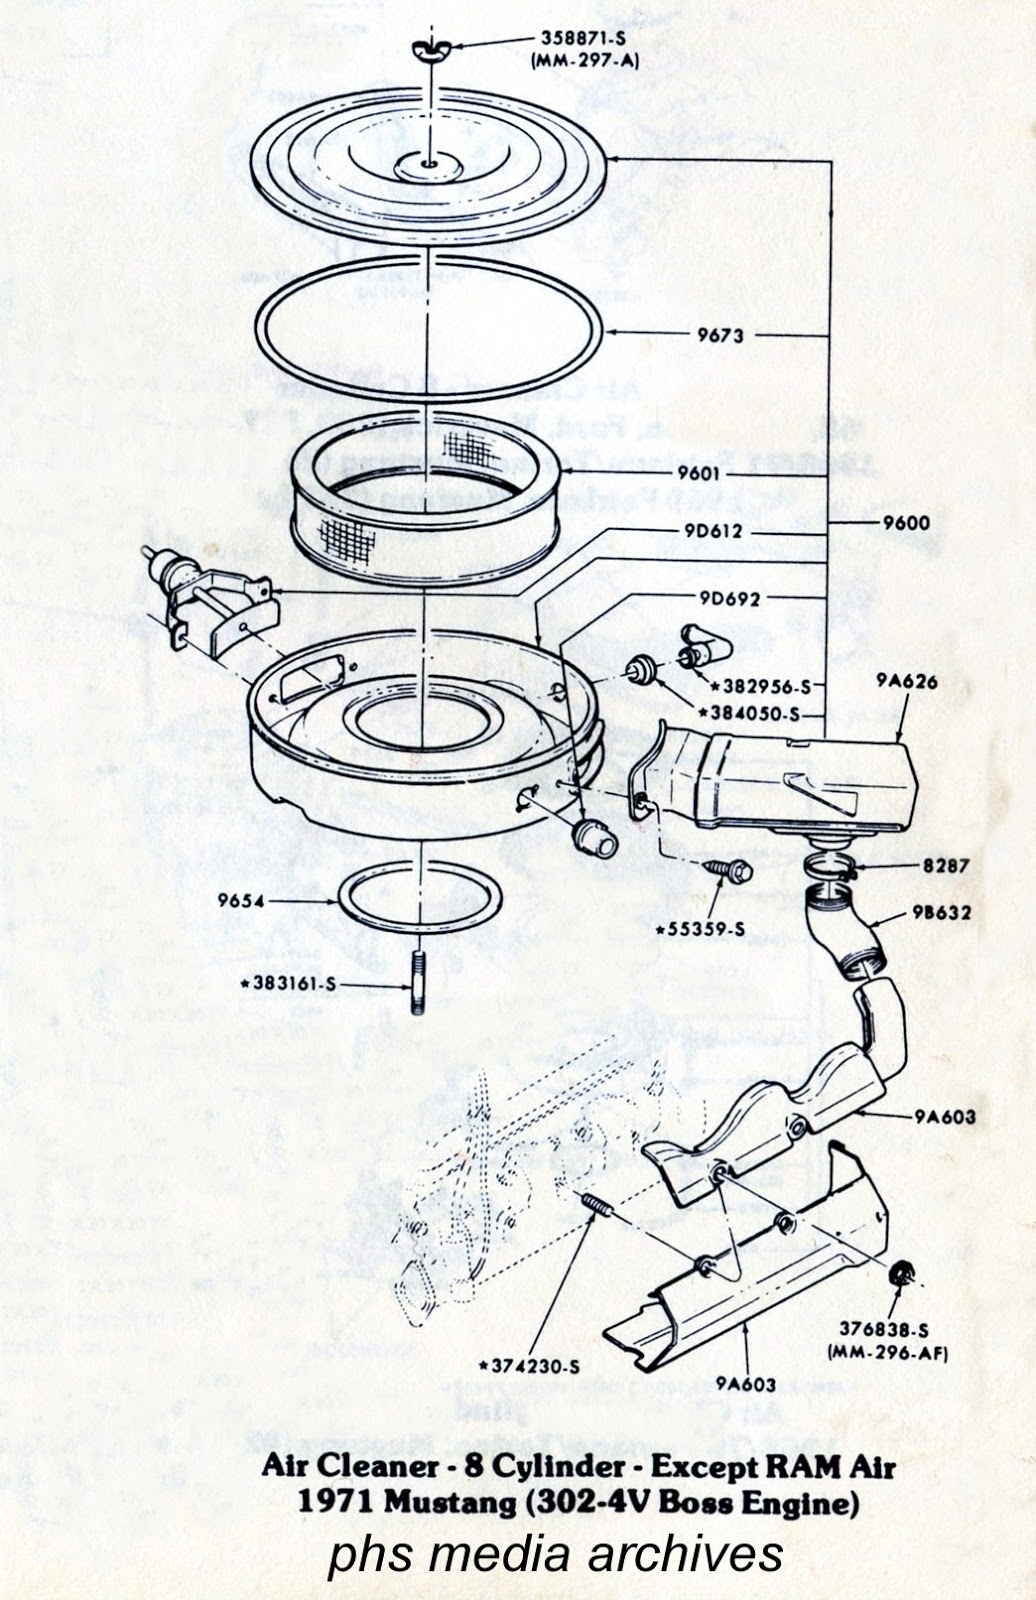 small resolution of the base six cylinder 250 cid air cleaner unit for the 1971 model specific model year is not shown we have included an engine diagram which has the air